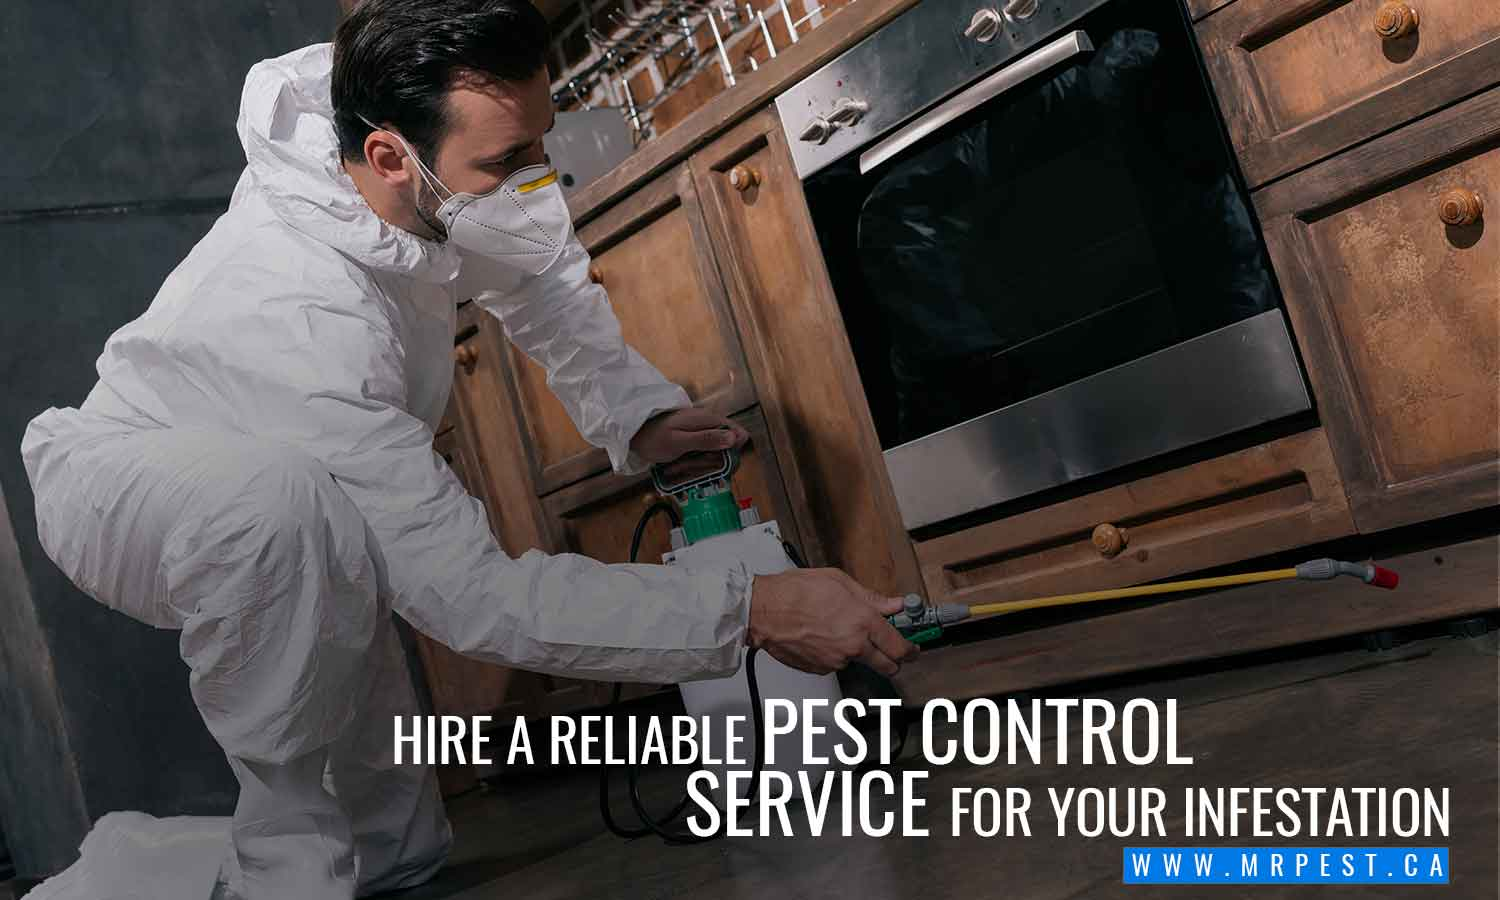 Hire a reliable pest control service for your infestation